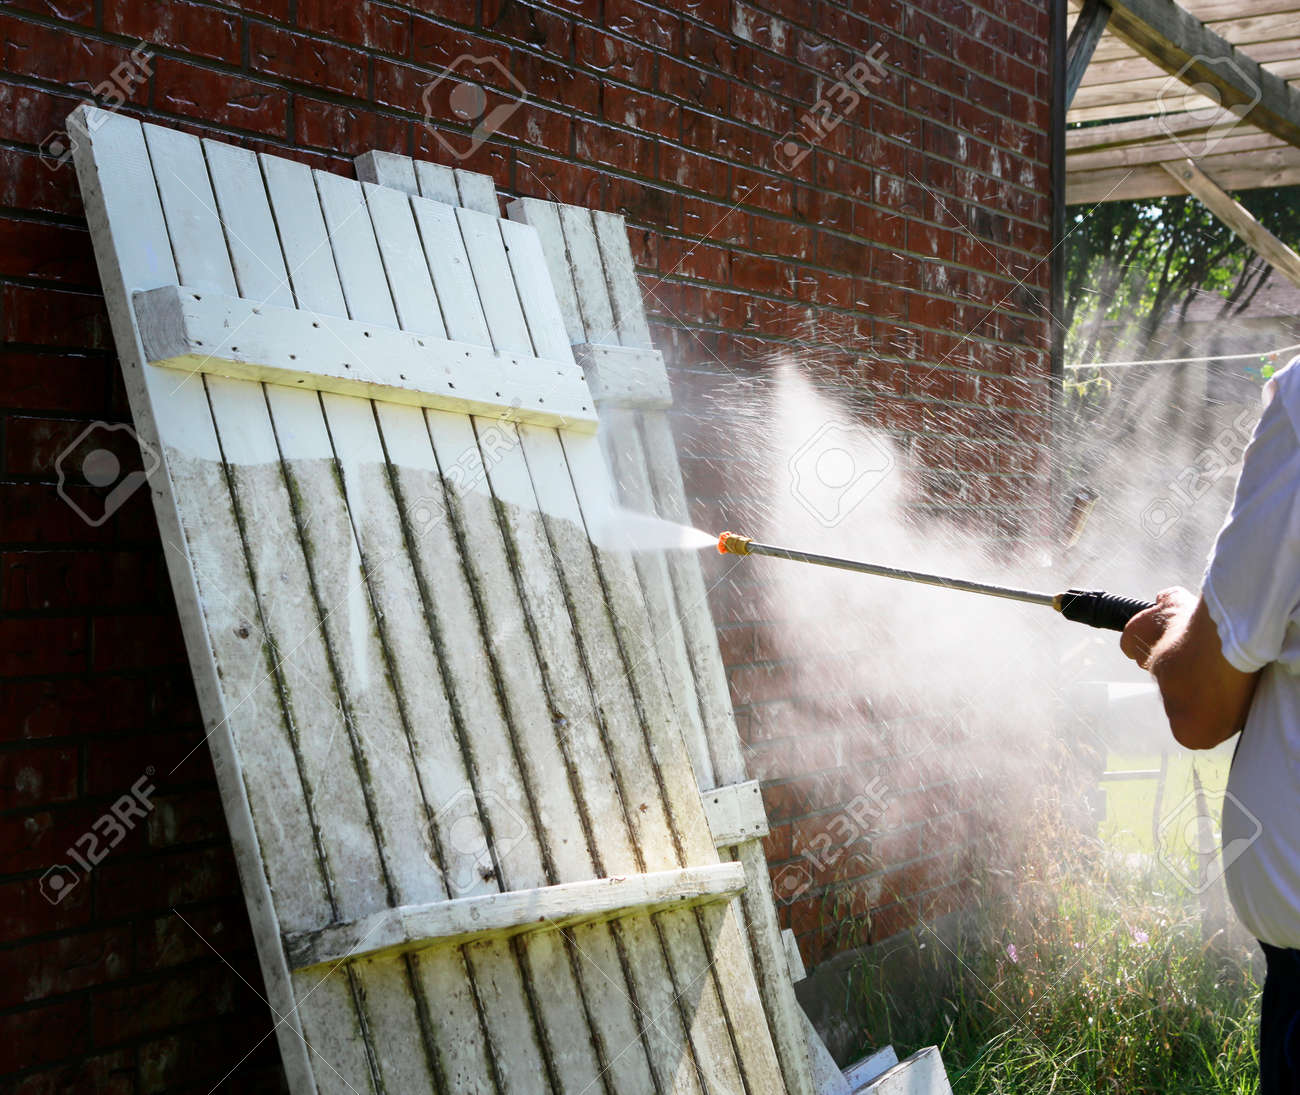 Cleaning very dirty picnic table with power washing machine. High pressure water cleaning of white wooden surface on backyard. - 146159000